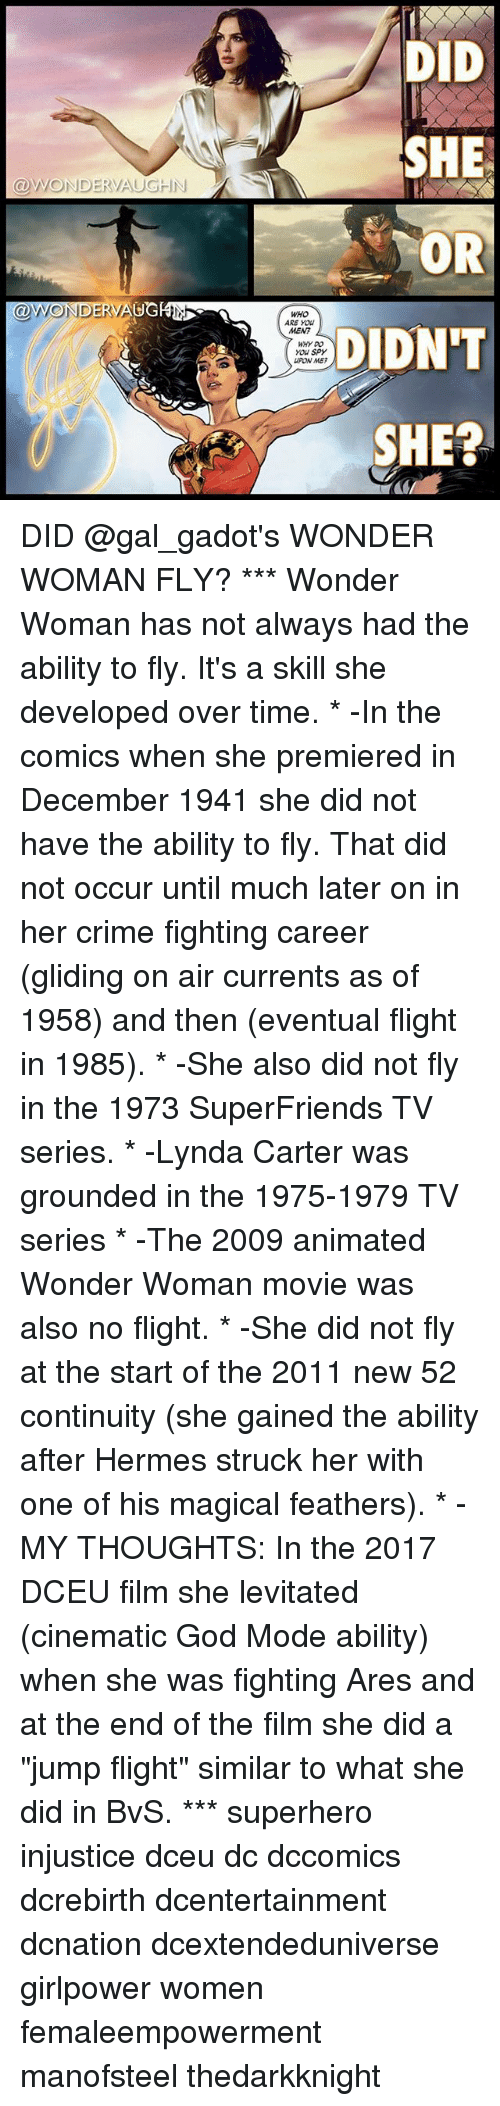 """Crime, God, and Memes: DID  SHE  OR  DIDN'T  SHE?  @WONDERVAUGHN  @WONDERVAUGEN  WHO  ARE YOU  MEN?  WHY DO  you Spy  UPON ME DID @gal_gadot's WONDER WOMAN FLY? *** Wonder Woman has not always had the ability to fly. It's a skill she developed over time. * -In the comics when she premiered in December 1941 she did not have the ability to fly. That did not occur until much later on in her crime fighting career (gliding on air currents as of 1958) and then (eventual flight in 1985). * -She also did not fly in the 1973 SuperFriends TV series. * -Lynda Carter was grounded in the 1975-1979 TV series * -The 2009 animated Wonder Woman movie was also no flight. * -She did not fly at the start of the 2011 new 52 continuity (she gained the ability after Hermes struck her with one of his magical feathers). * -MY THOUGHTS: In the 2017 DCEU film she levitated (cinematic God Mode ability) when she was fighting Ares and at the end of the film she did a """"jump flight"""" similar to what she did in BvS. *** superhero injustice dceu dc dccomics dcrebirth dcentertainment dcnation dcextendeduniverse girlpower women femaleempowerment manofsteel thedarkknight"""